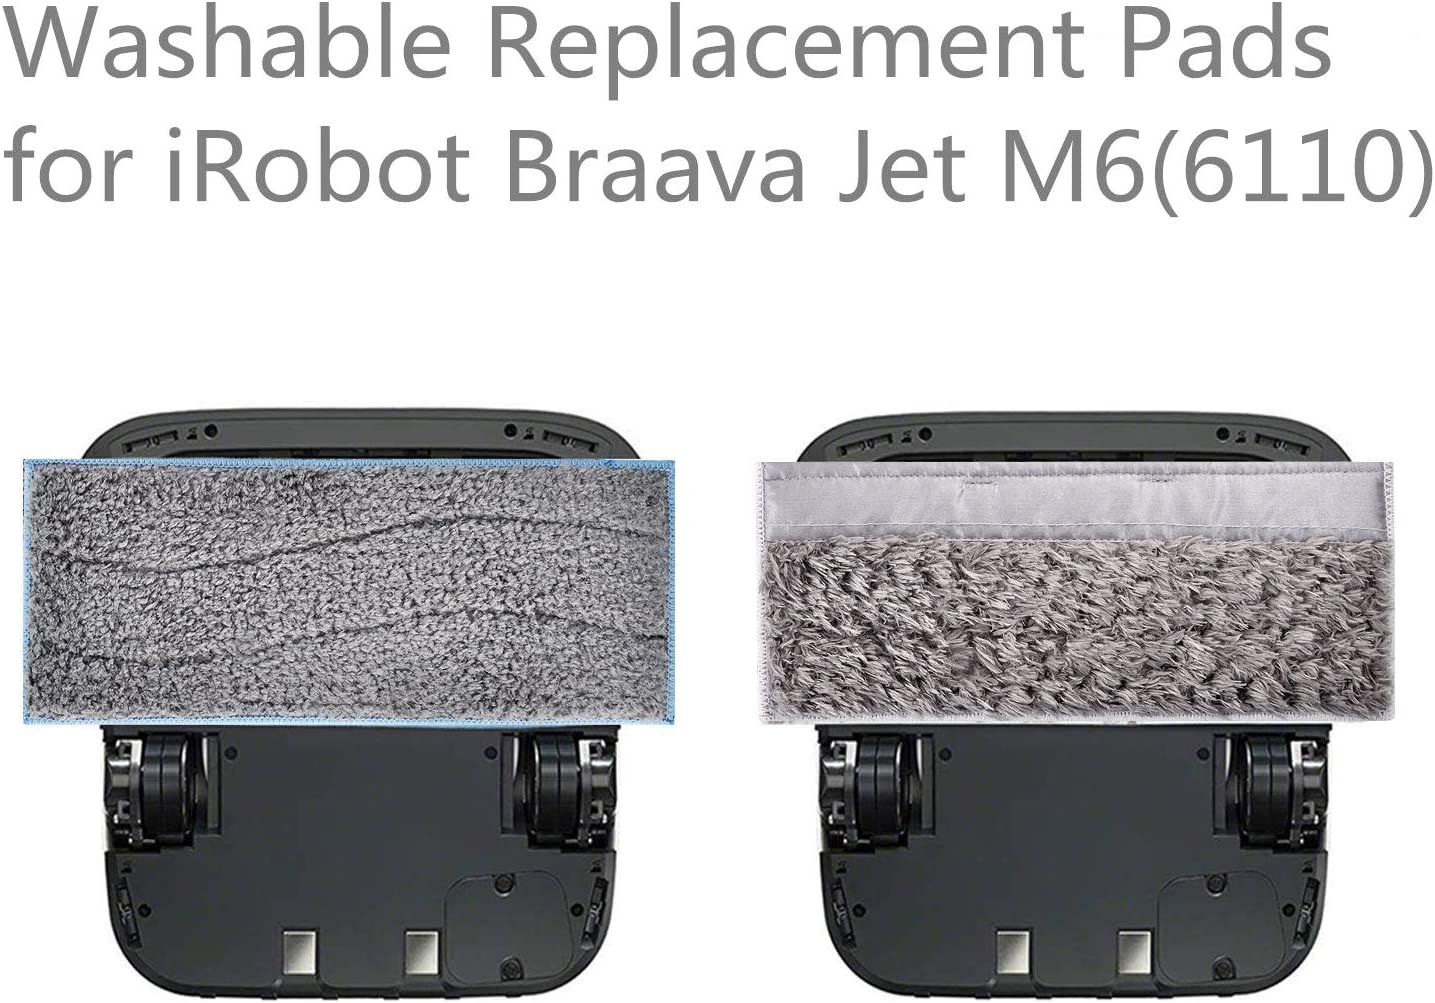 QPX Replacement Parts for iRobot Braava Jet m6 Washable Pads Multi-Pack 3 Wet /& 3 Dry Pads